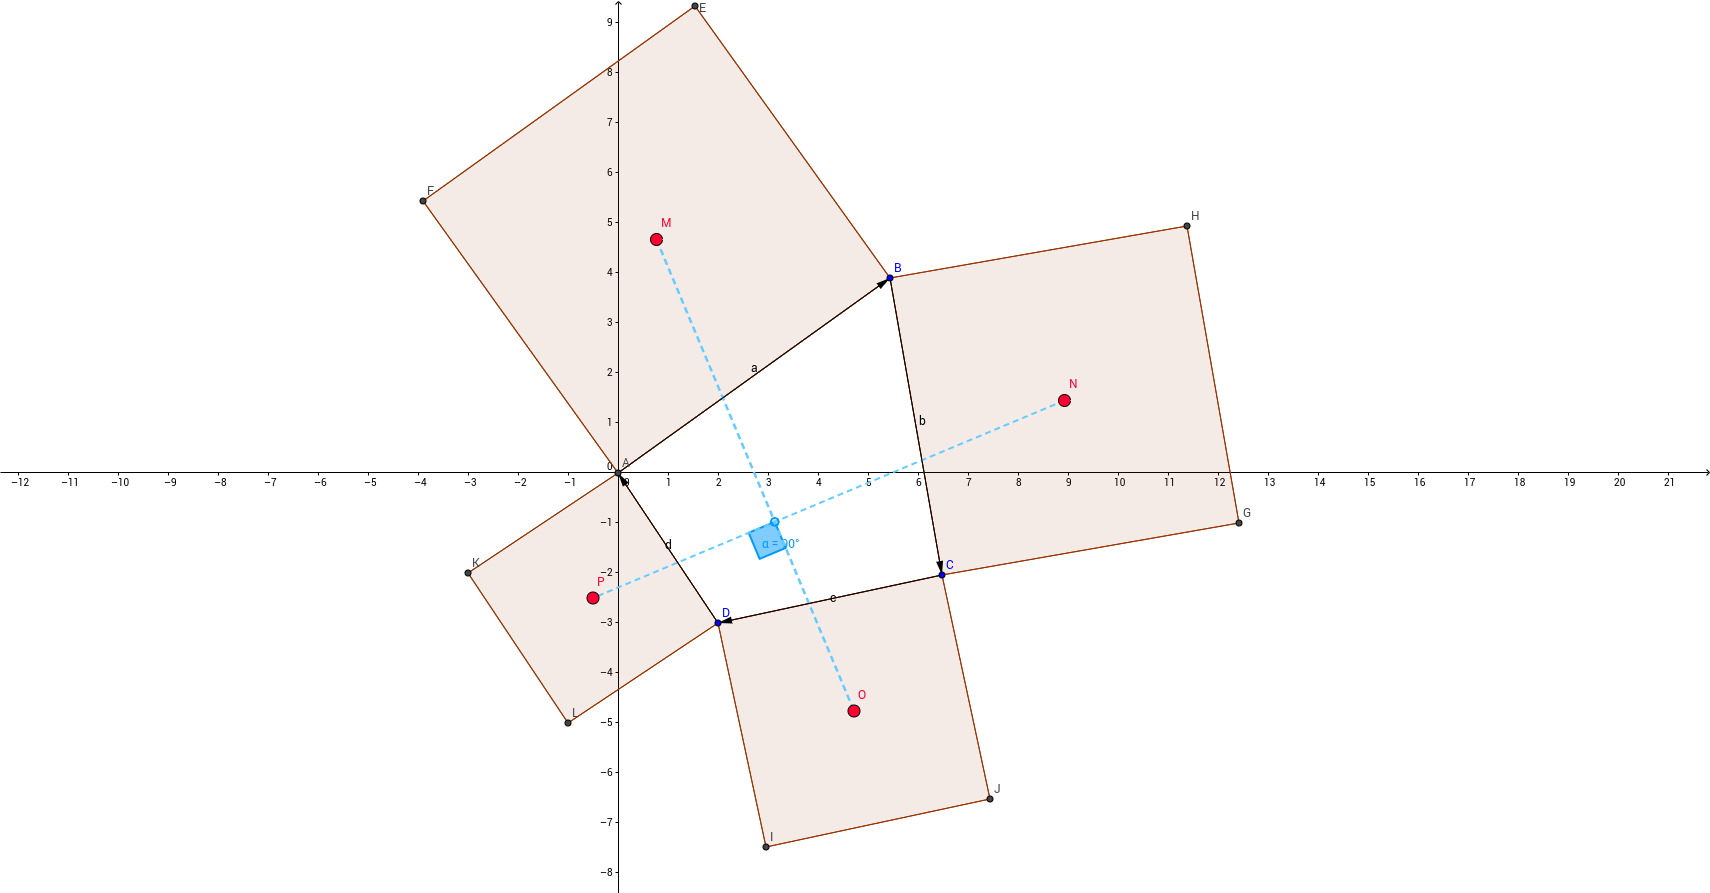 Prove a quadrilateral relation by using complex analysis.